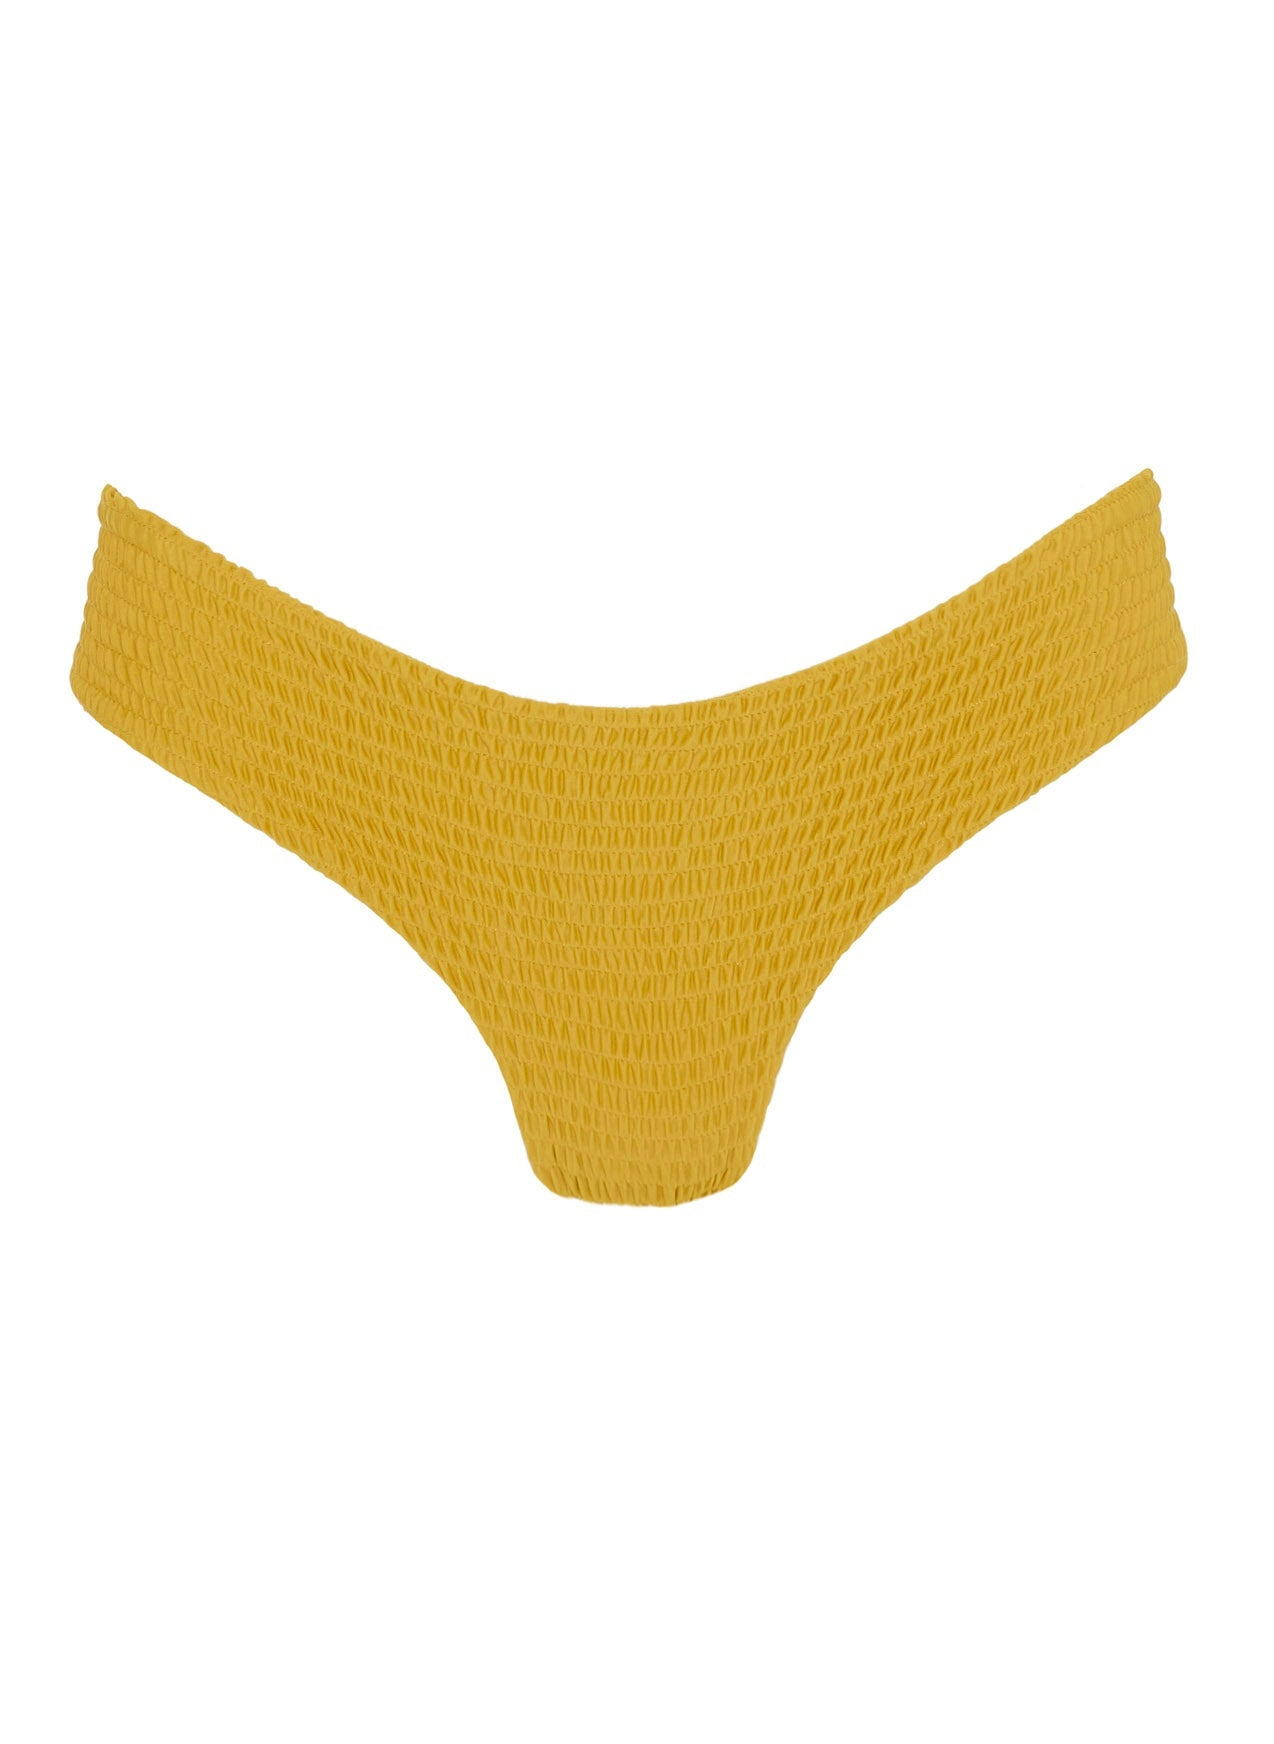 PLAIN MARIGOLD - ISABELI BOTTOM - FINAL SALE